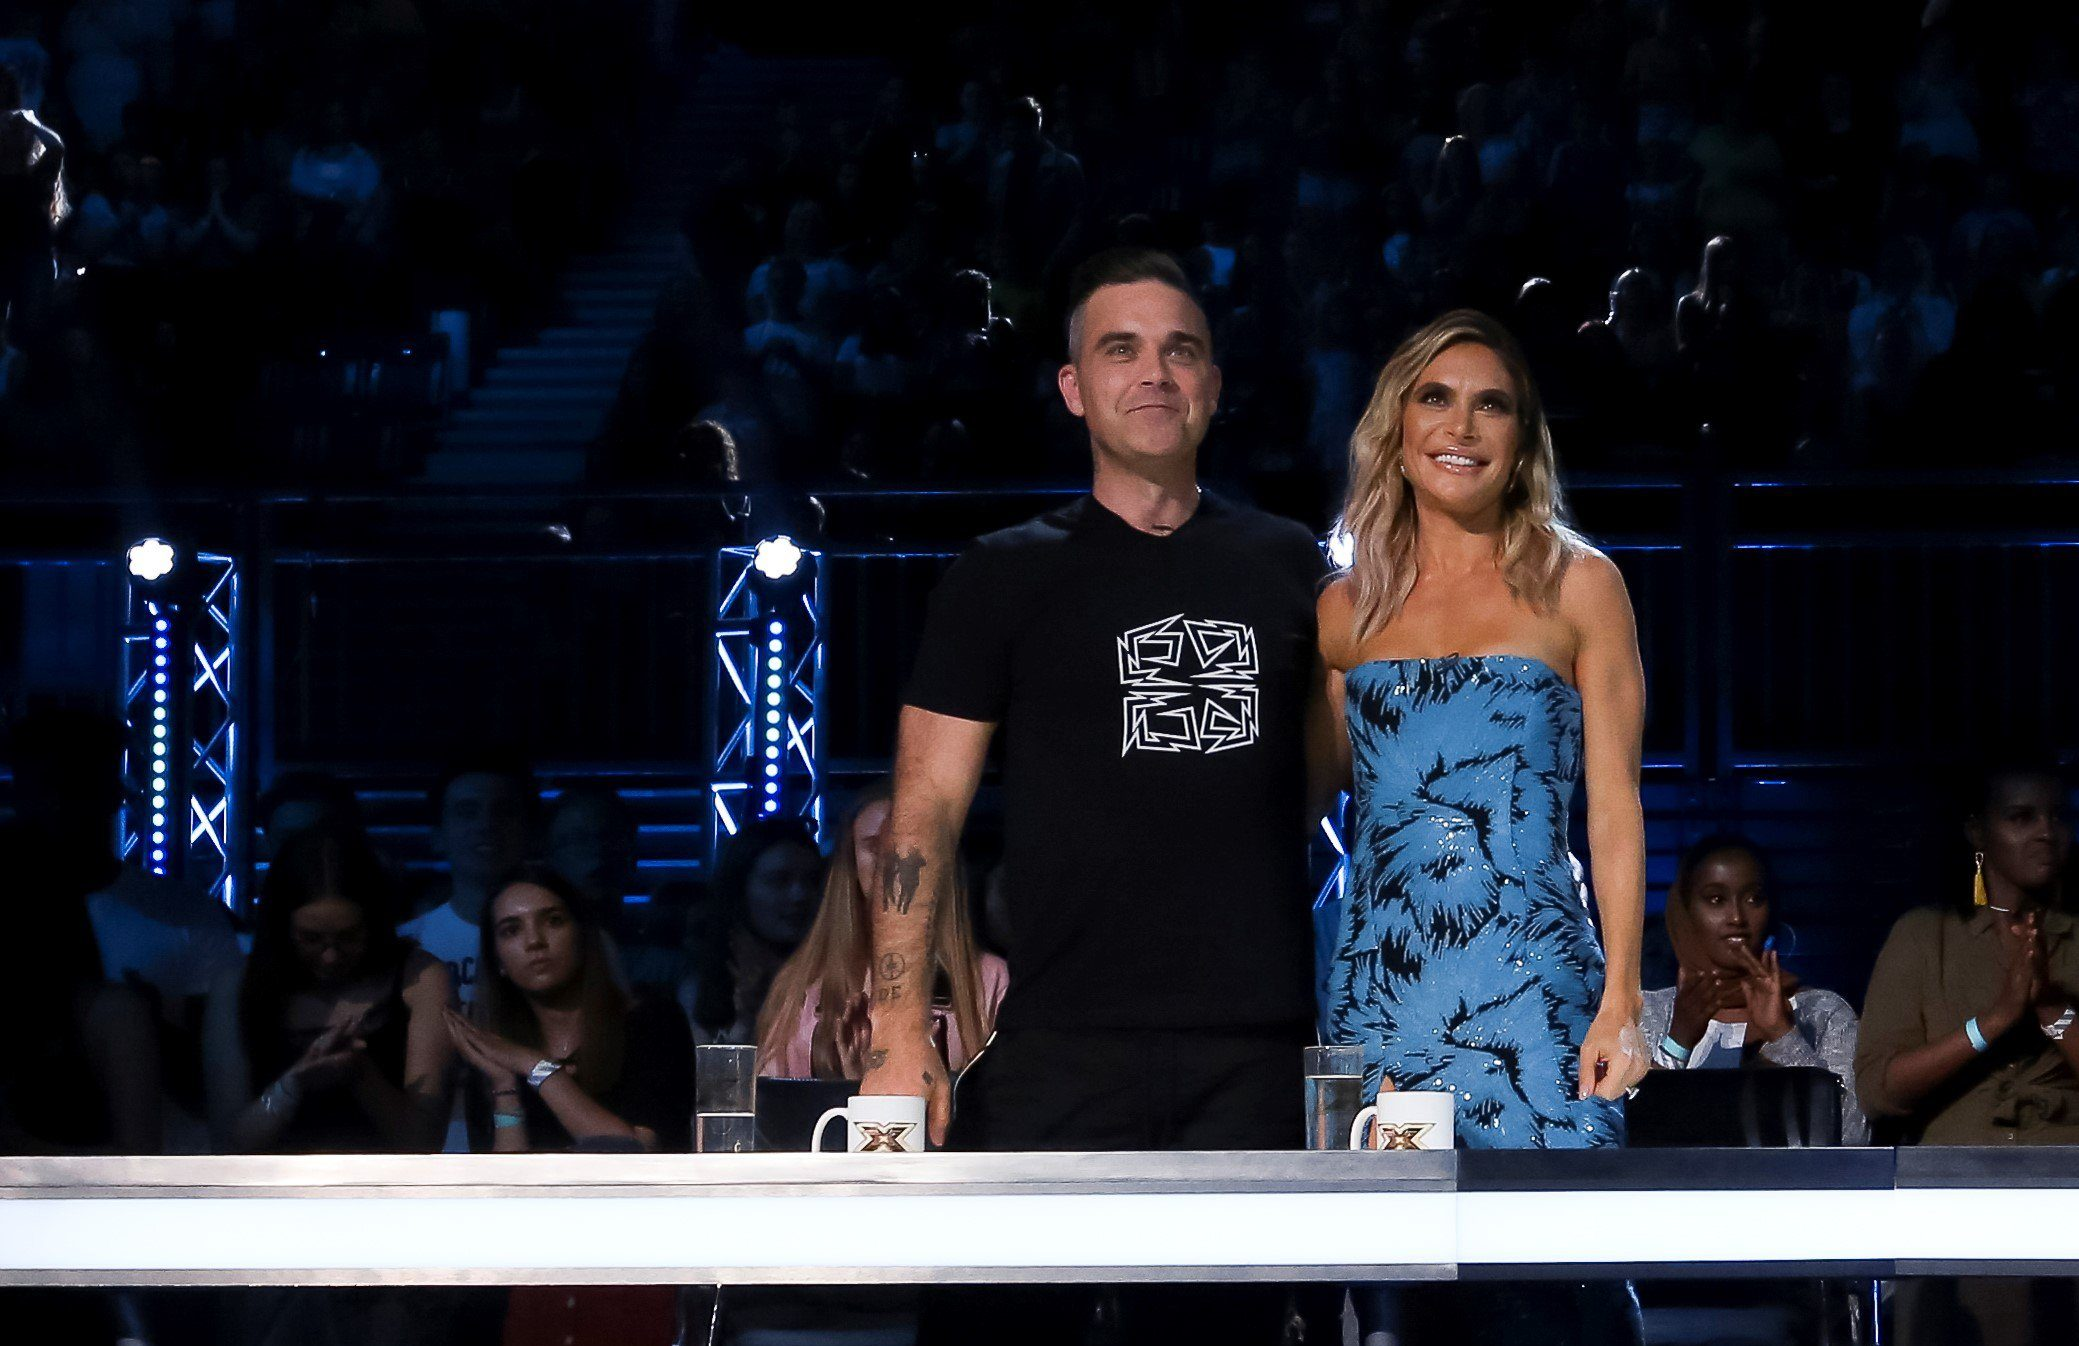 STRICT EMBARGO - NO USE BEFORE 22:05 SATURDAY 29TH SEPTEMBER 2018. EDITORIAL USE ONLY - NO MERCHANDISING Mandatory Credit: Photo by Dymond/Thames/Syco/REX (9903309ac) Robbie Williams and Ayda Williams during the performance of Danny Tetley 'The X Factor' TV show, Series 15, Episode 9, UK - 29 Sep 2018